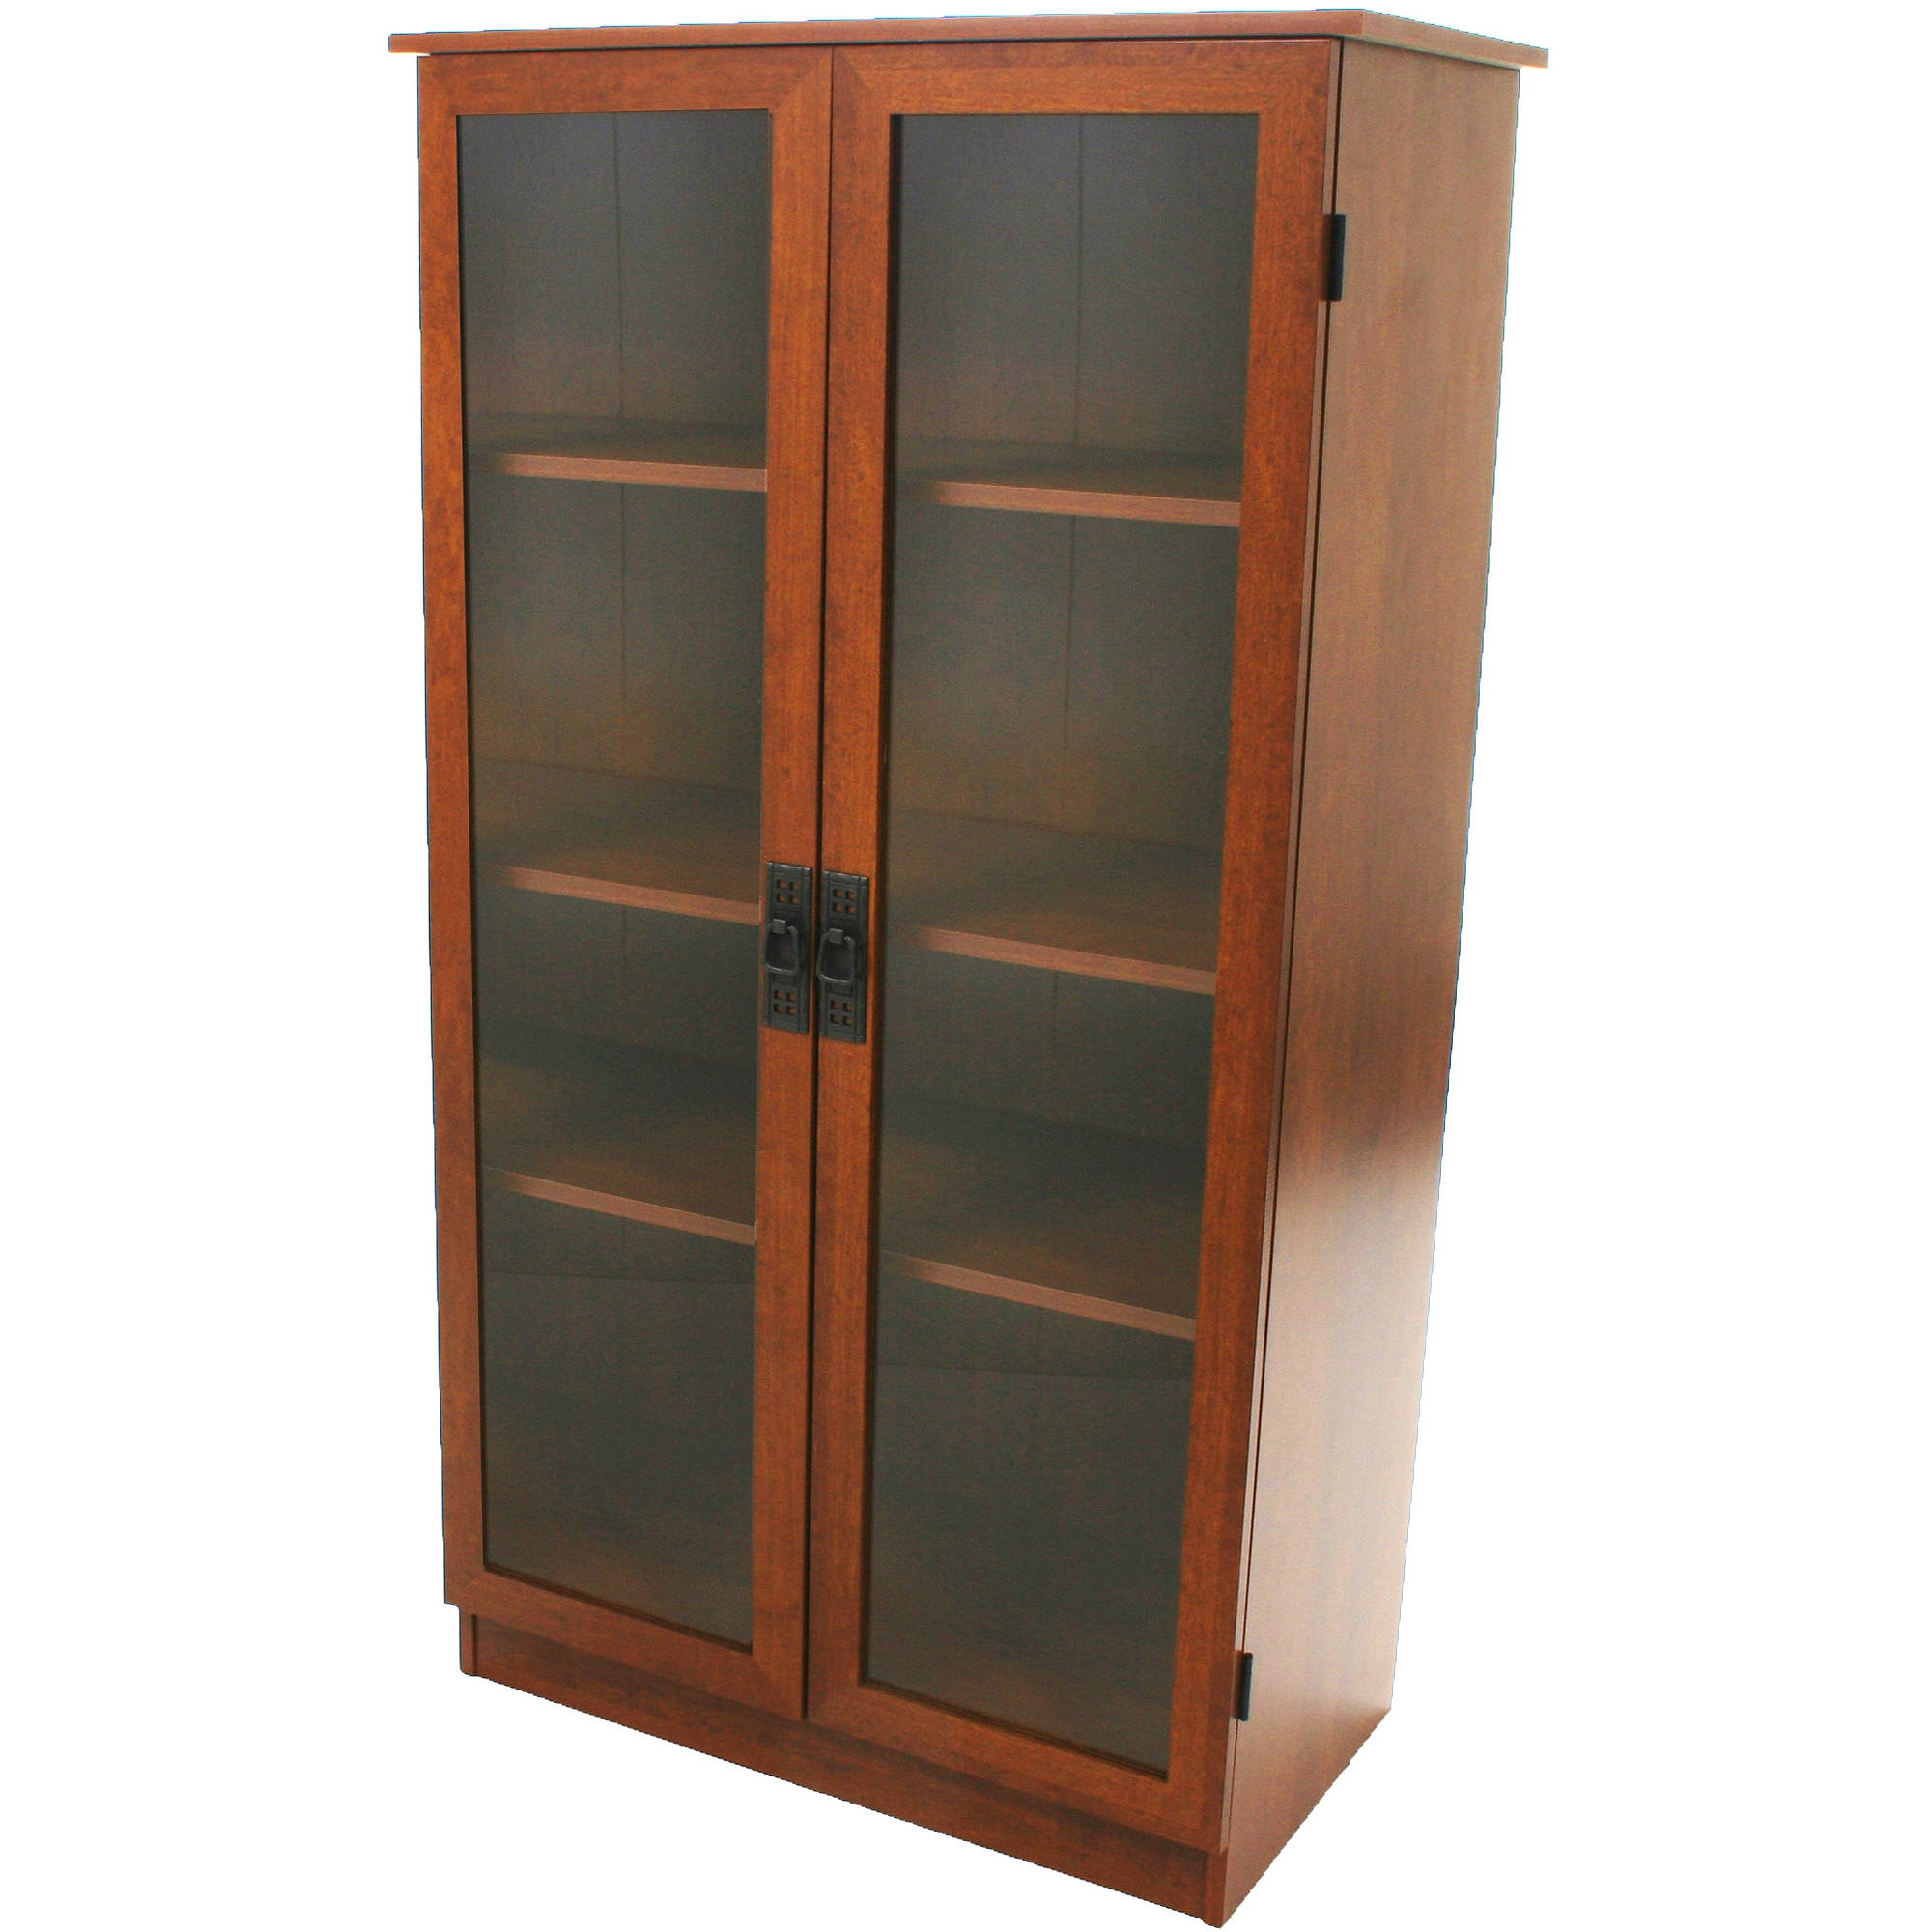 Wood Storage Cabinets With Doors 72